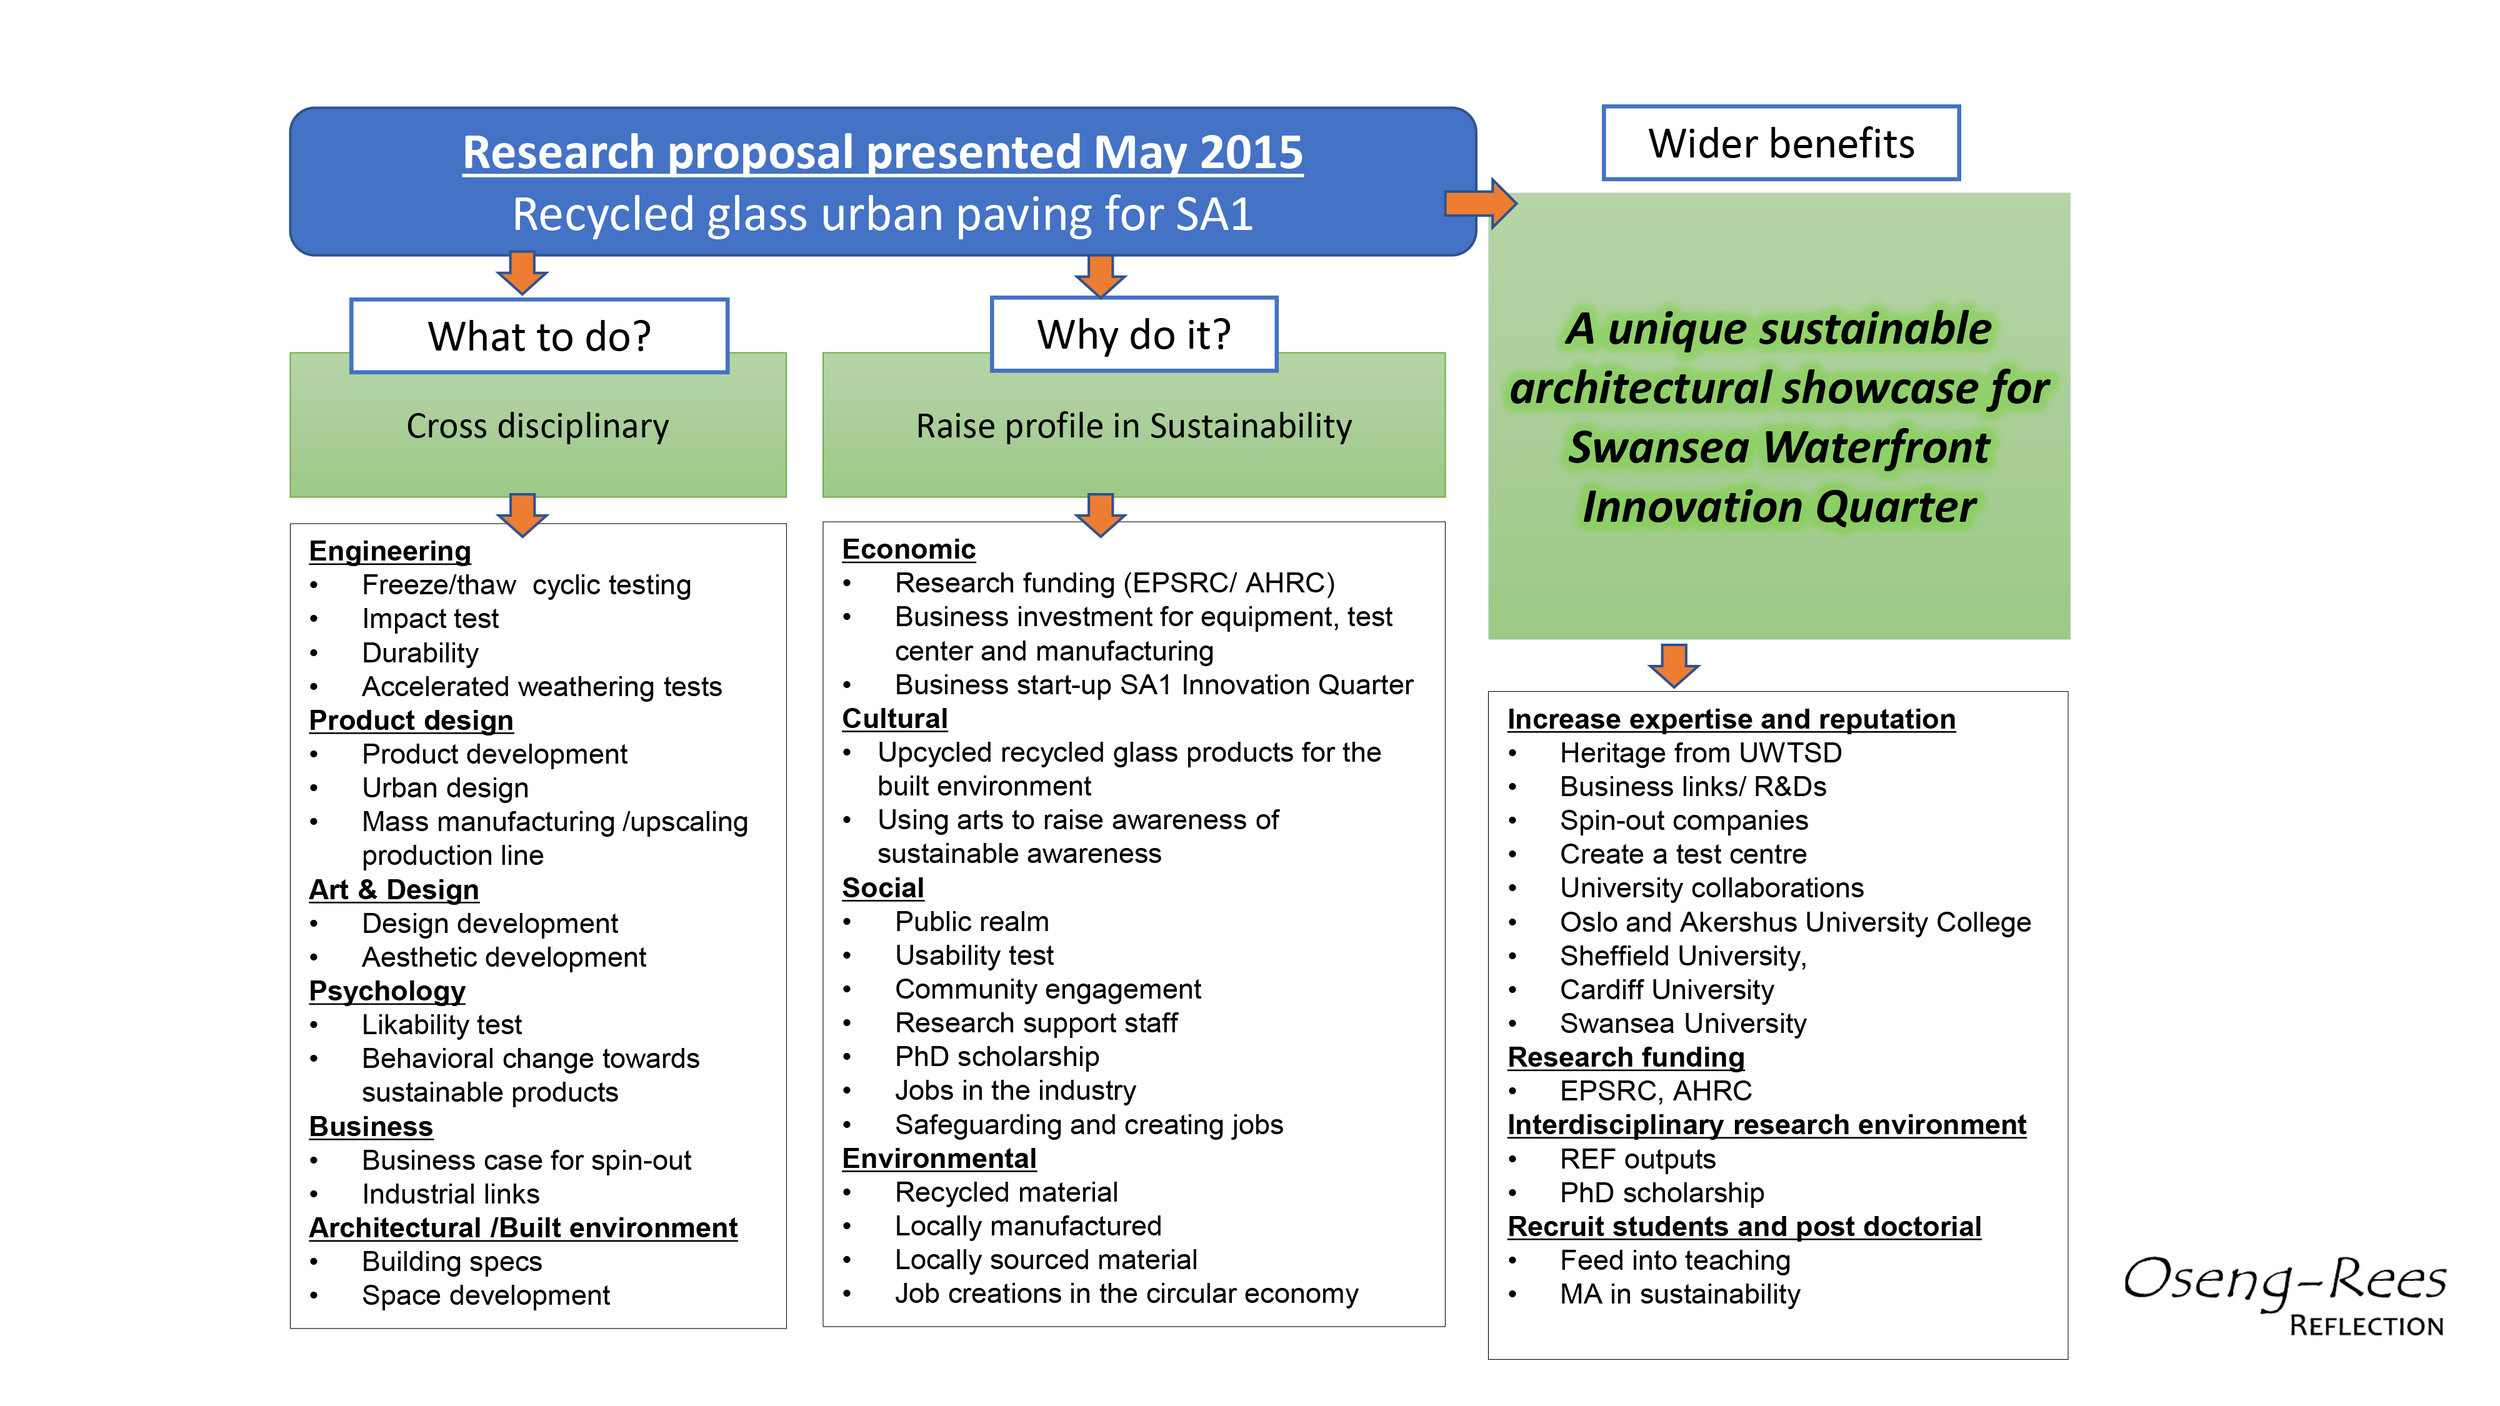 Research proposal by Dr Oseng-Rees June 2015,. This proposal gave grounds for the amendments that occurred in June 2015, in the Sustainability Principles for SA1.